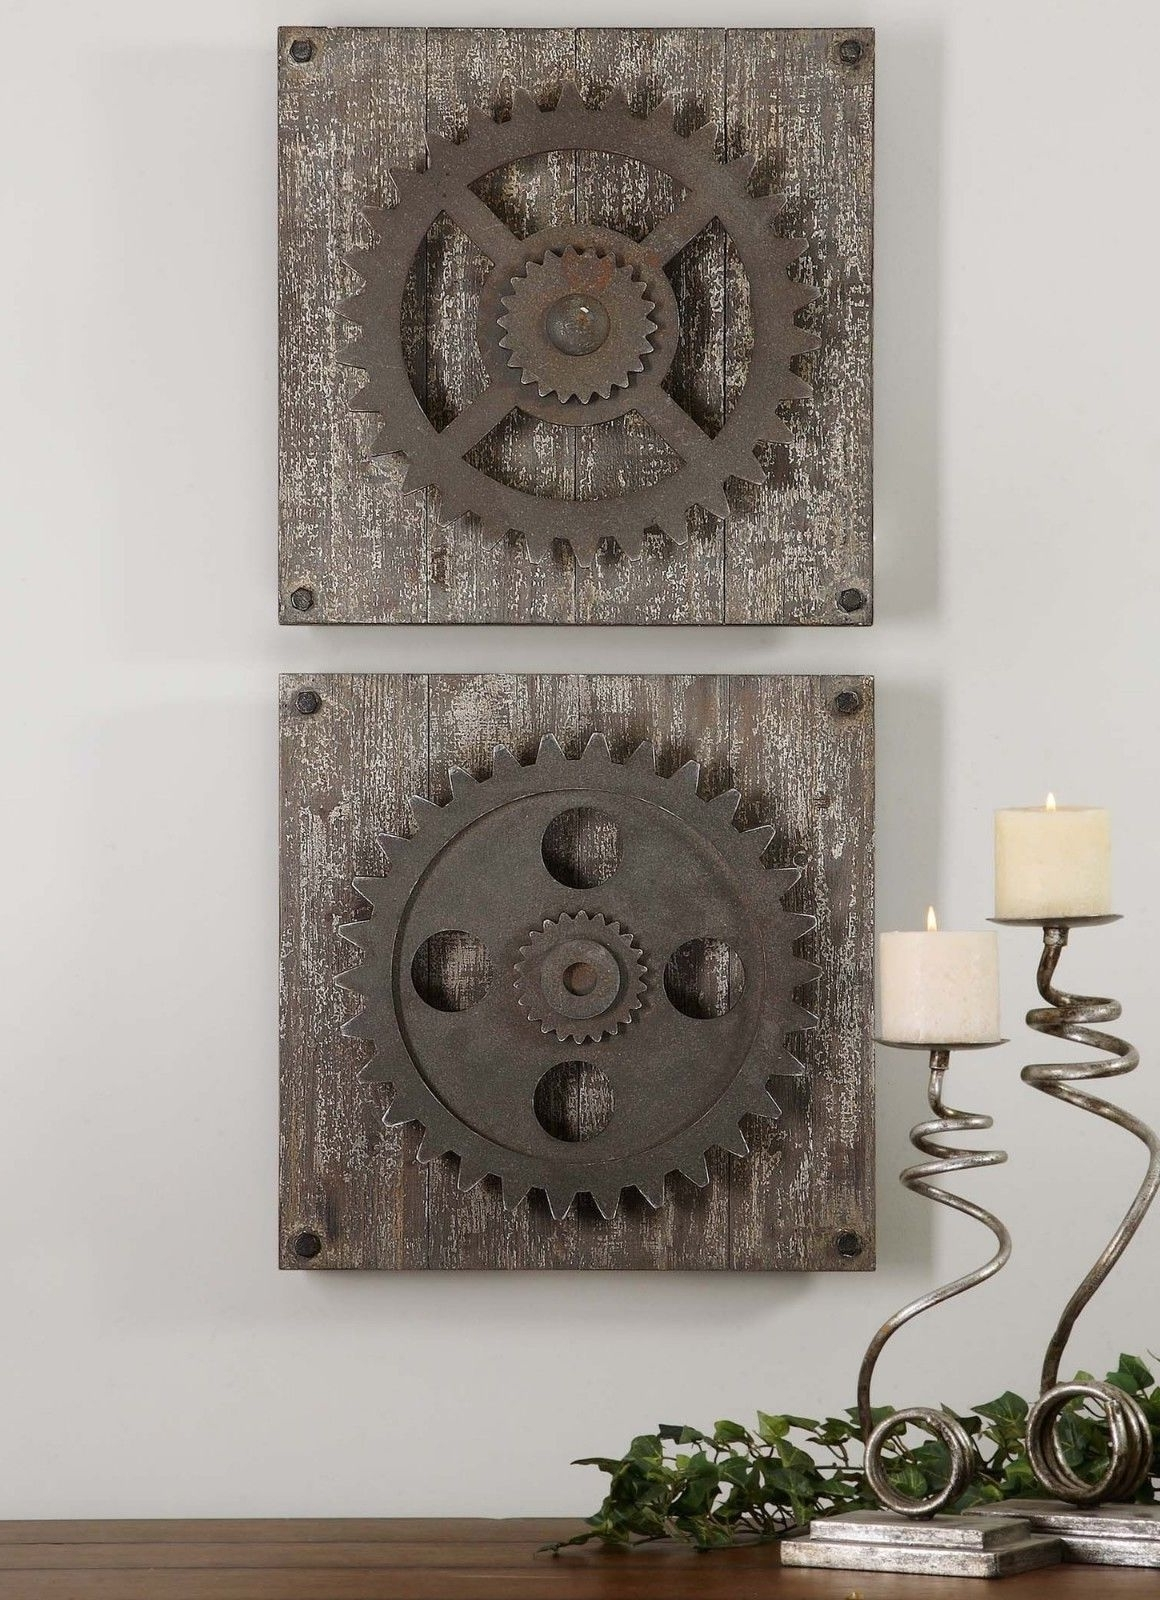 Urban Industrial Loft Steampunk Decor Rusty Gears Cogs 3D Wall Art With Popular Steampunk Wall Art (View 17 of 20)